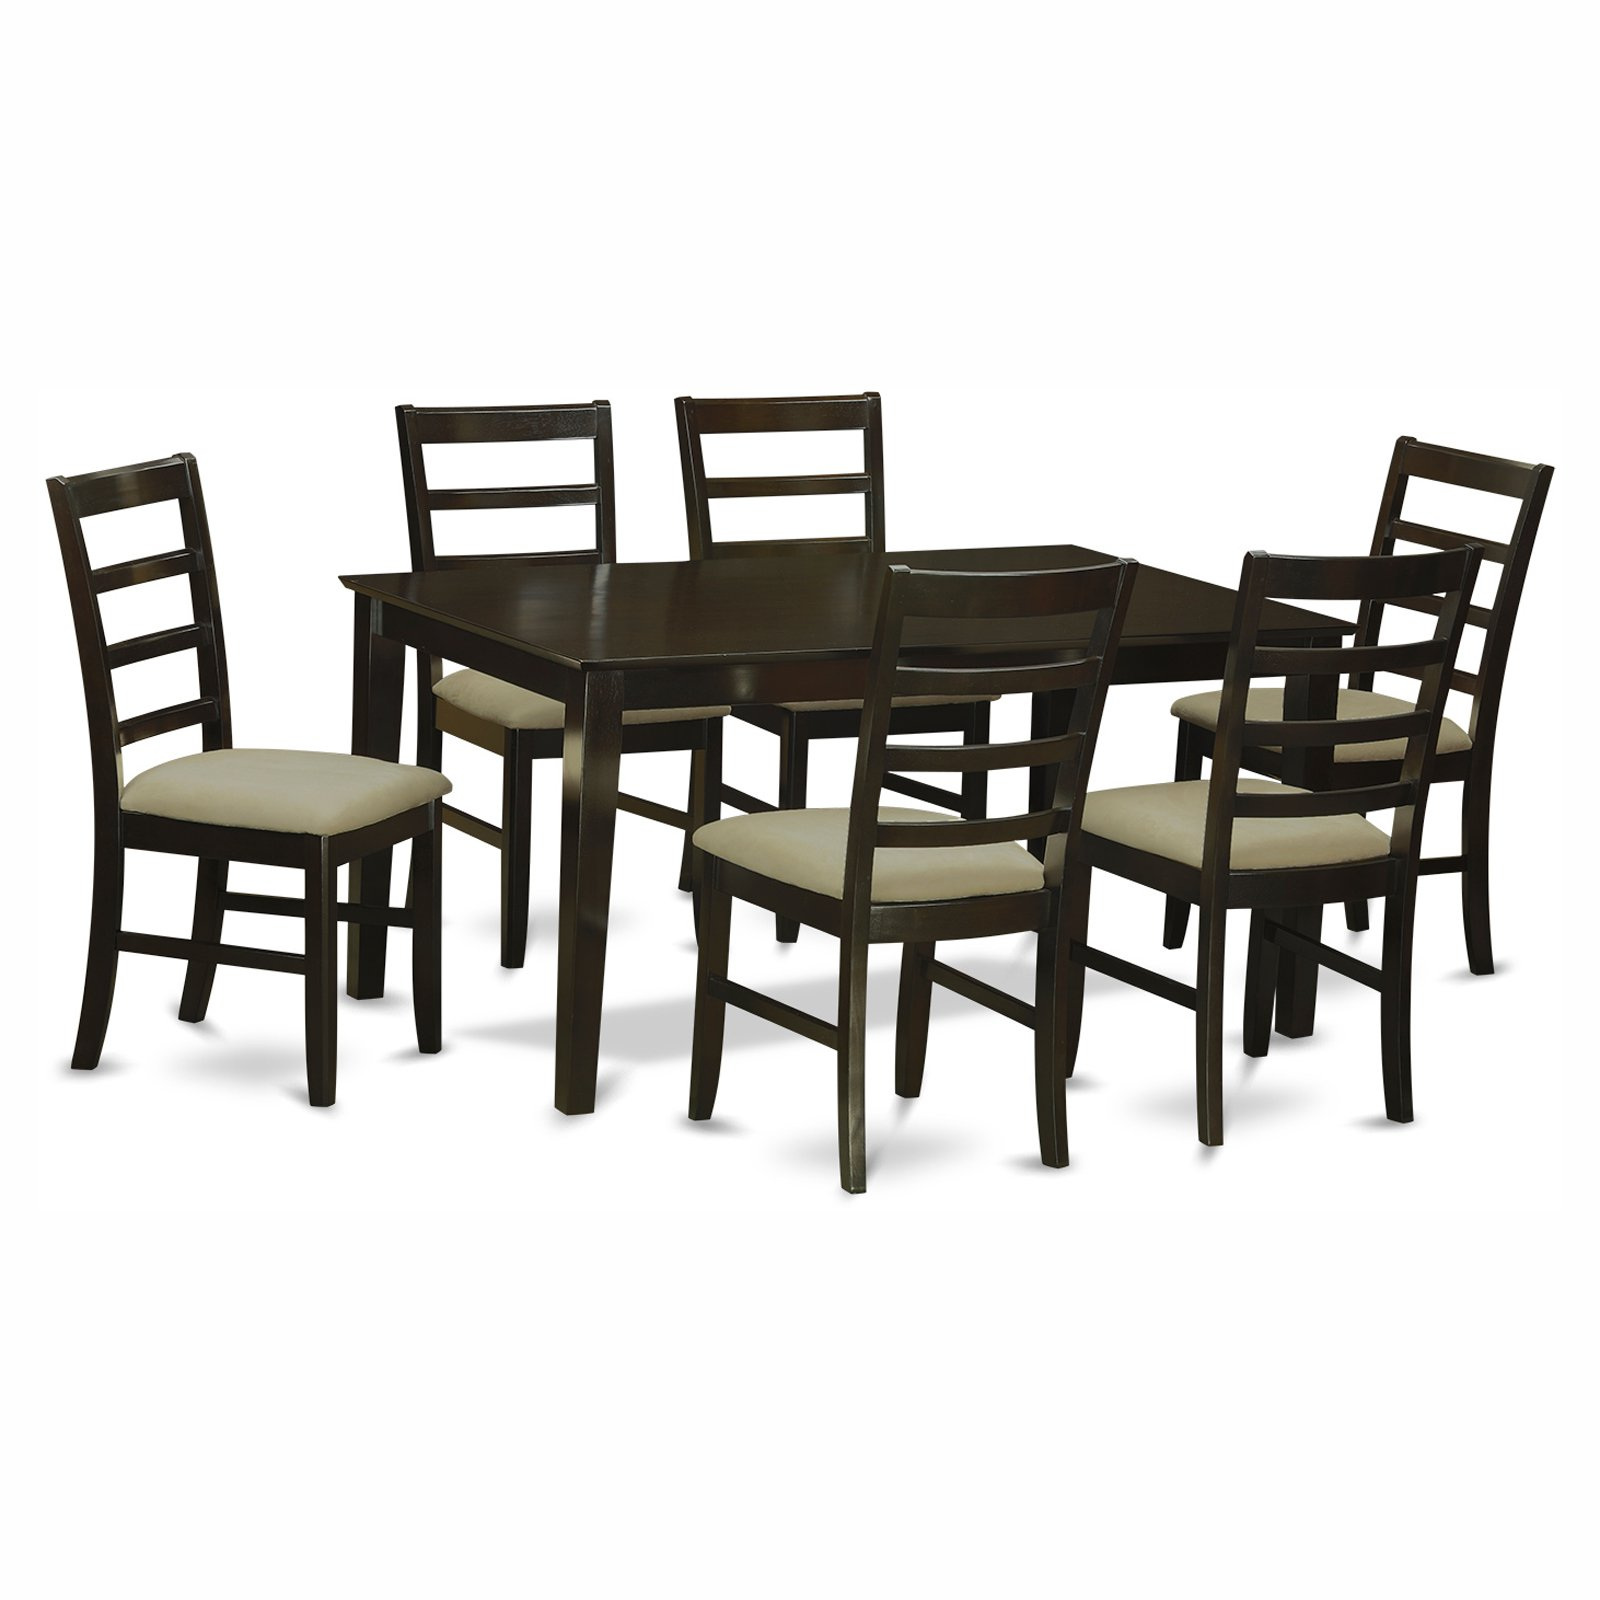 East West Furniture Capris 7 Piece Rectangular Dining Table Set with Parfait Microfiber Seat Chairs